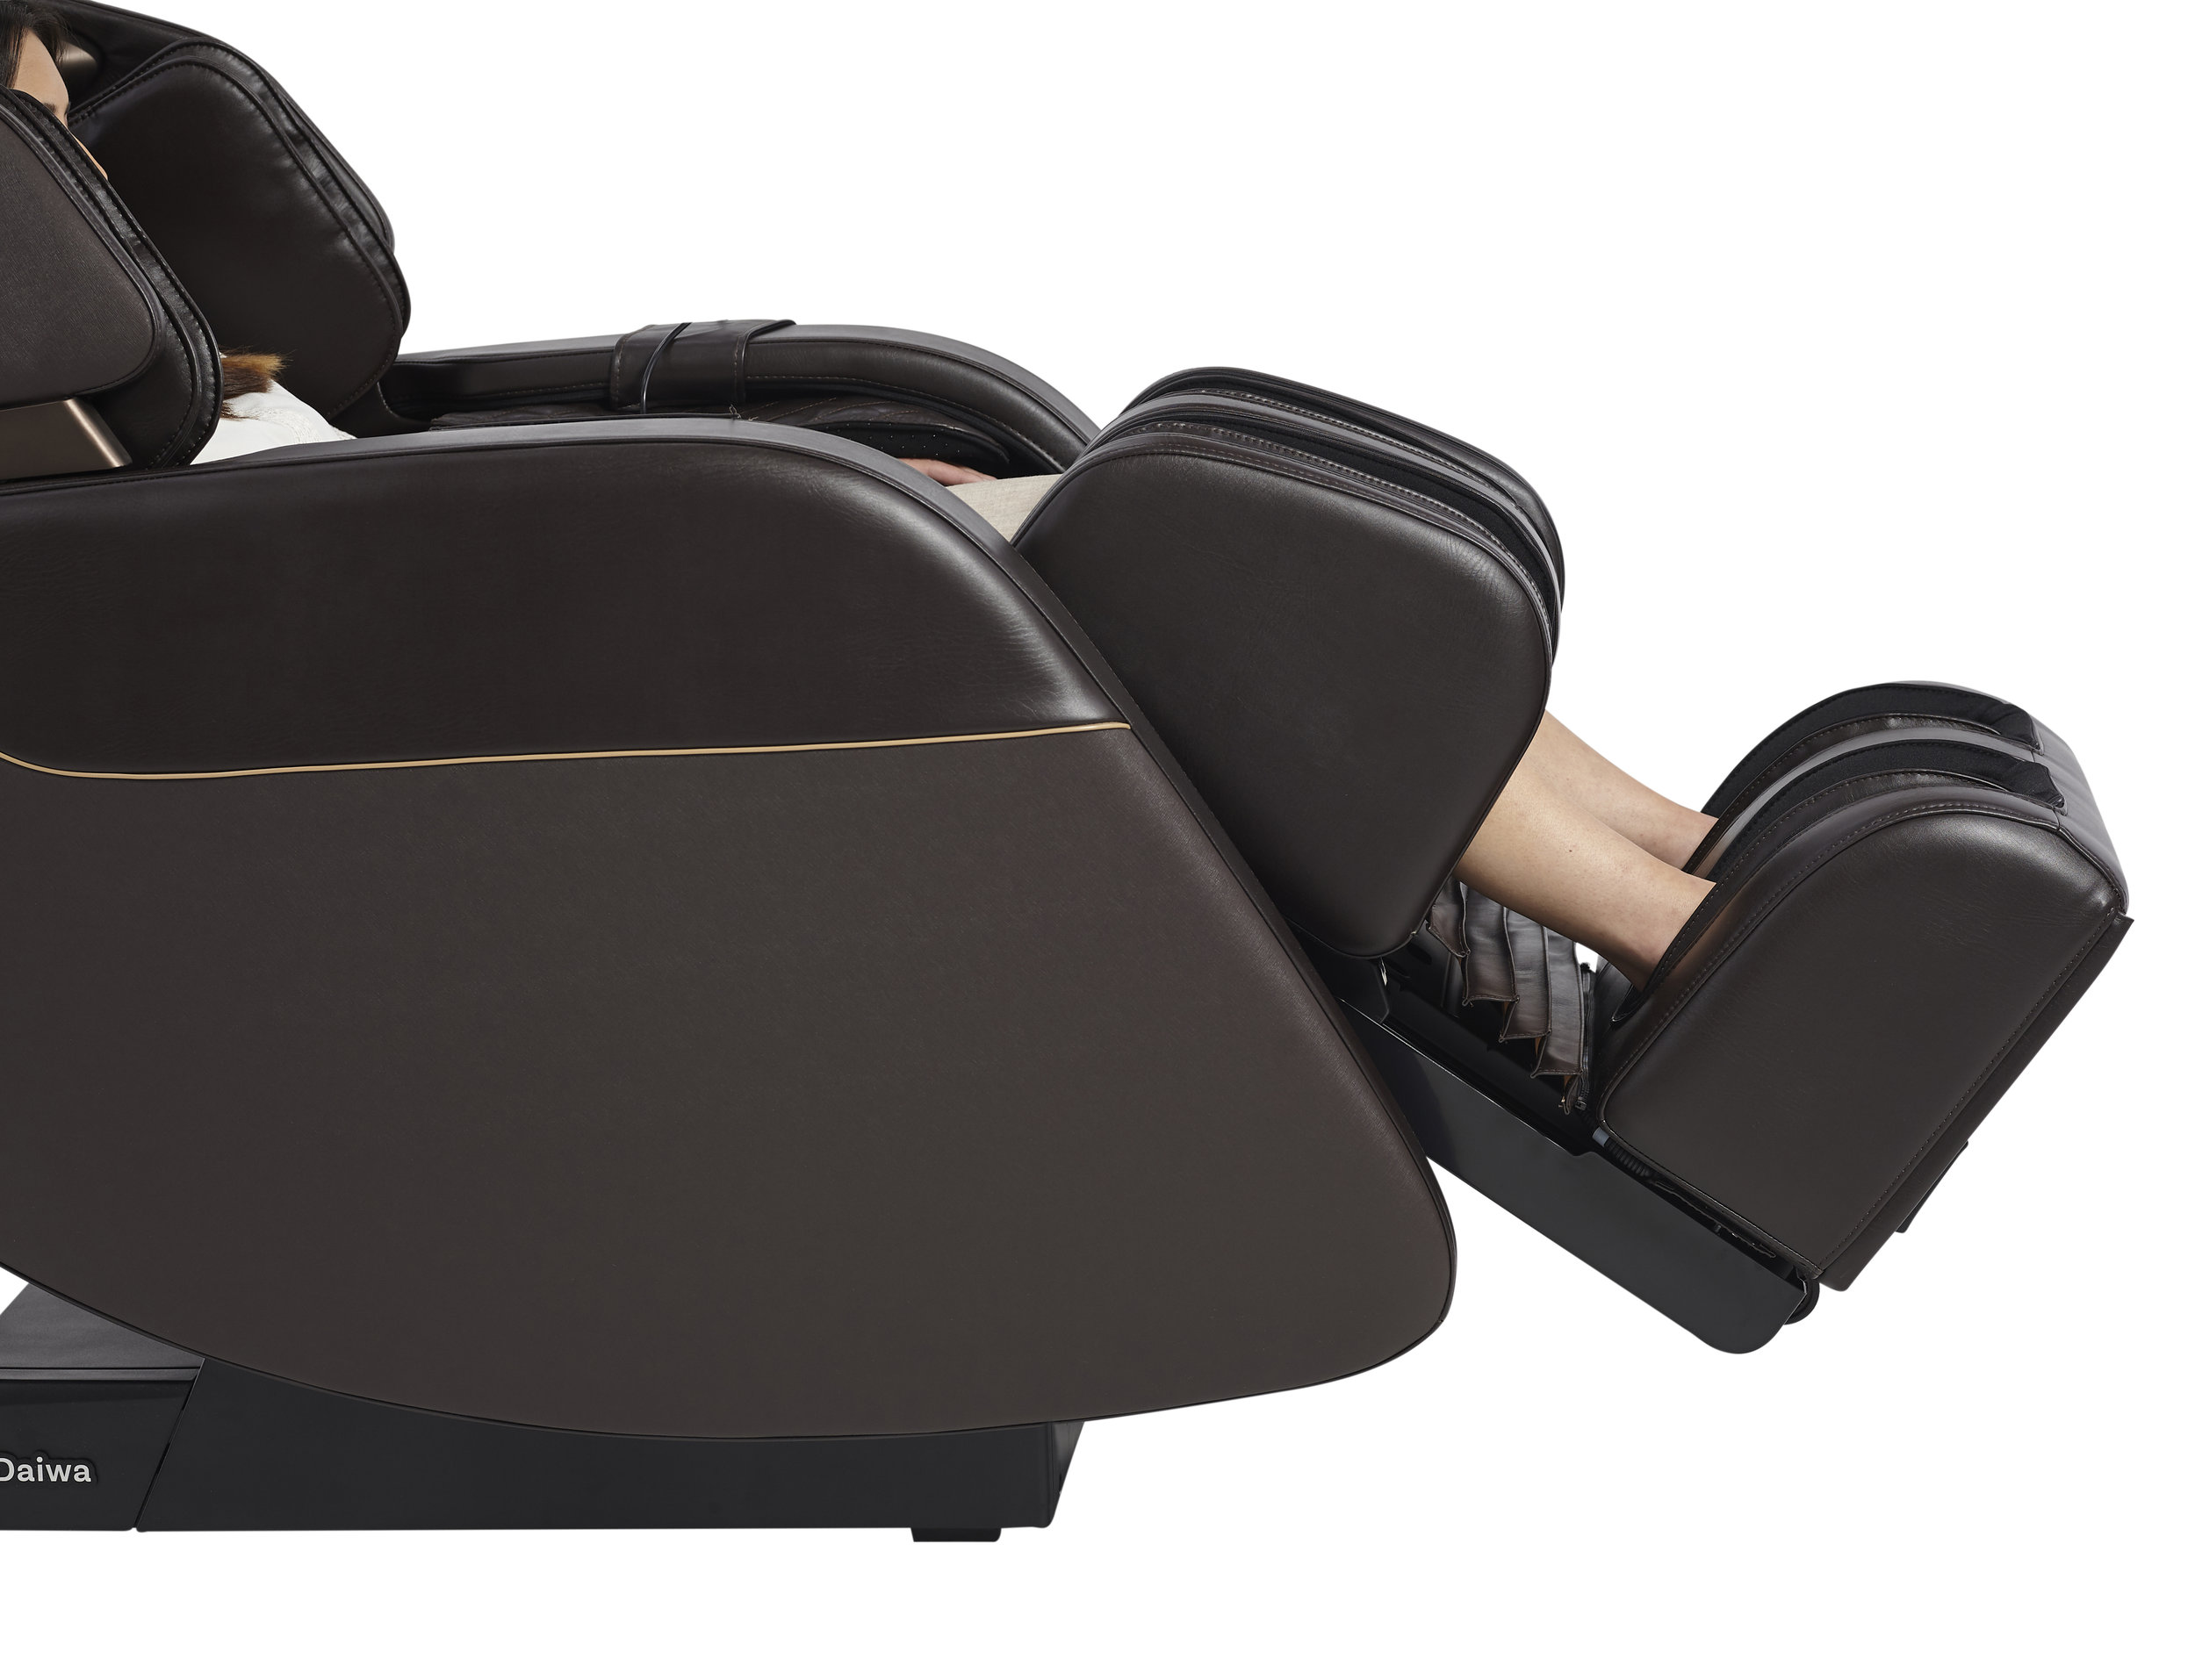 2019_0520_Daiwa_MassageChairs0392 copy.jpg